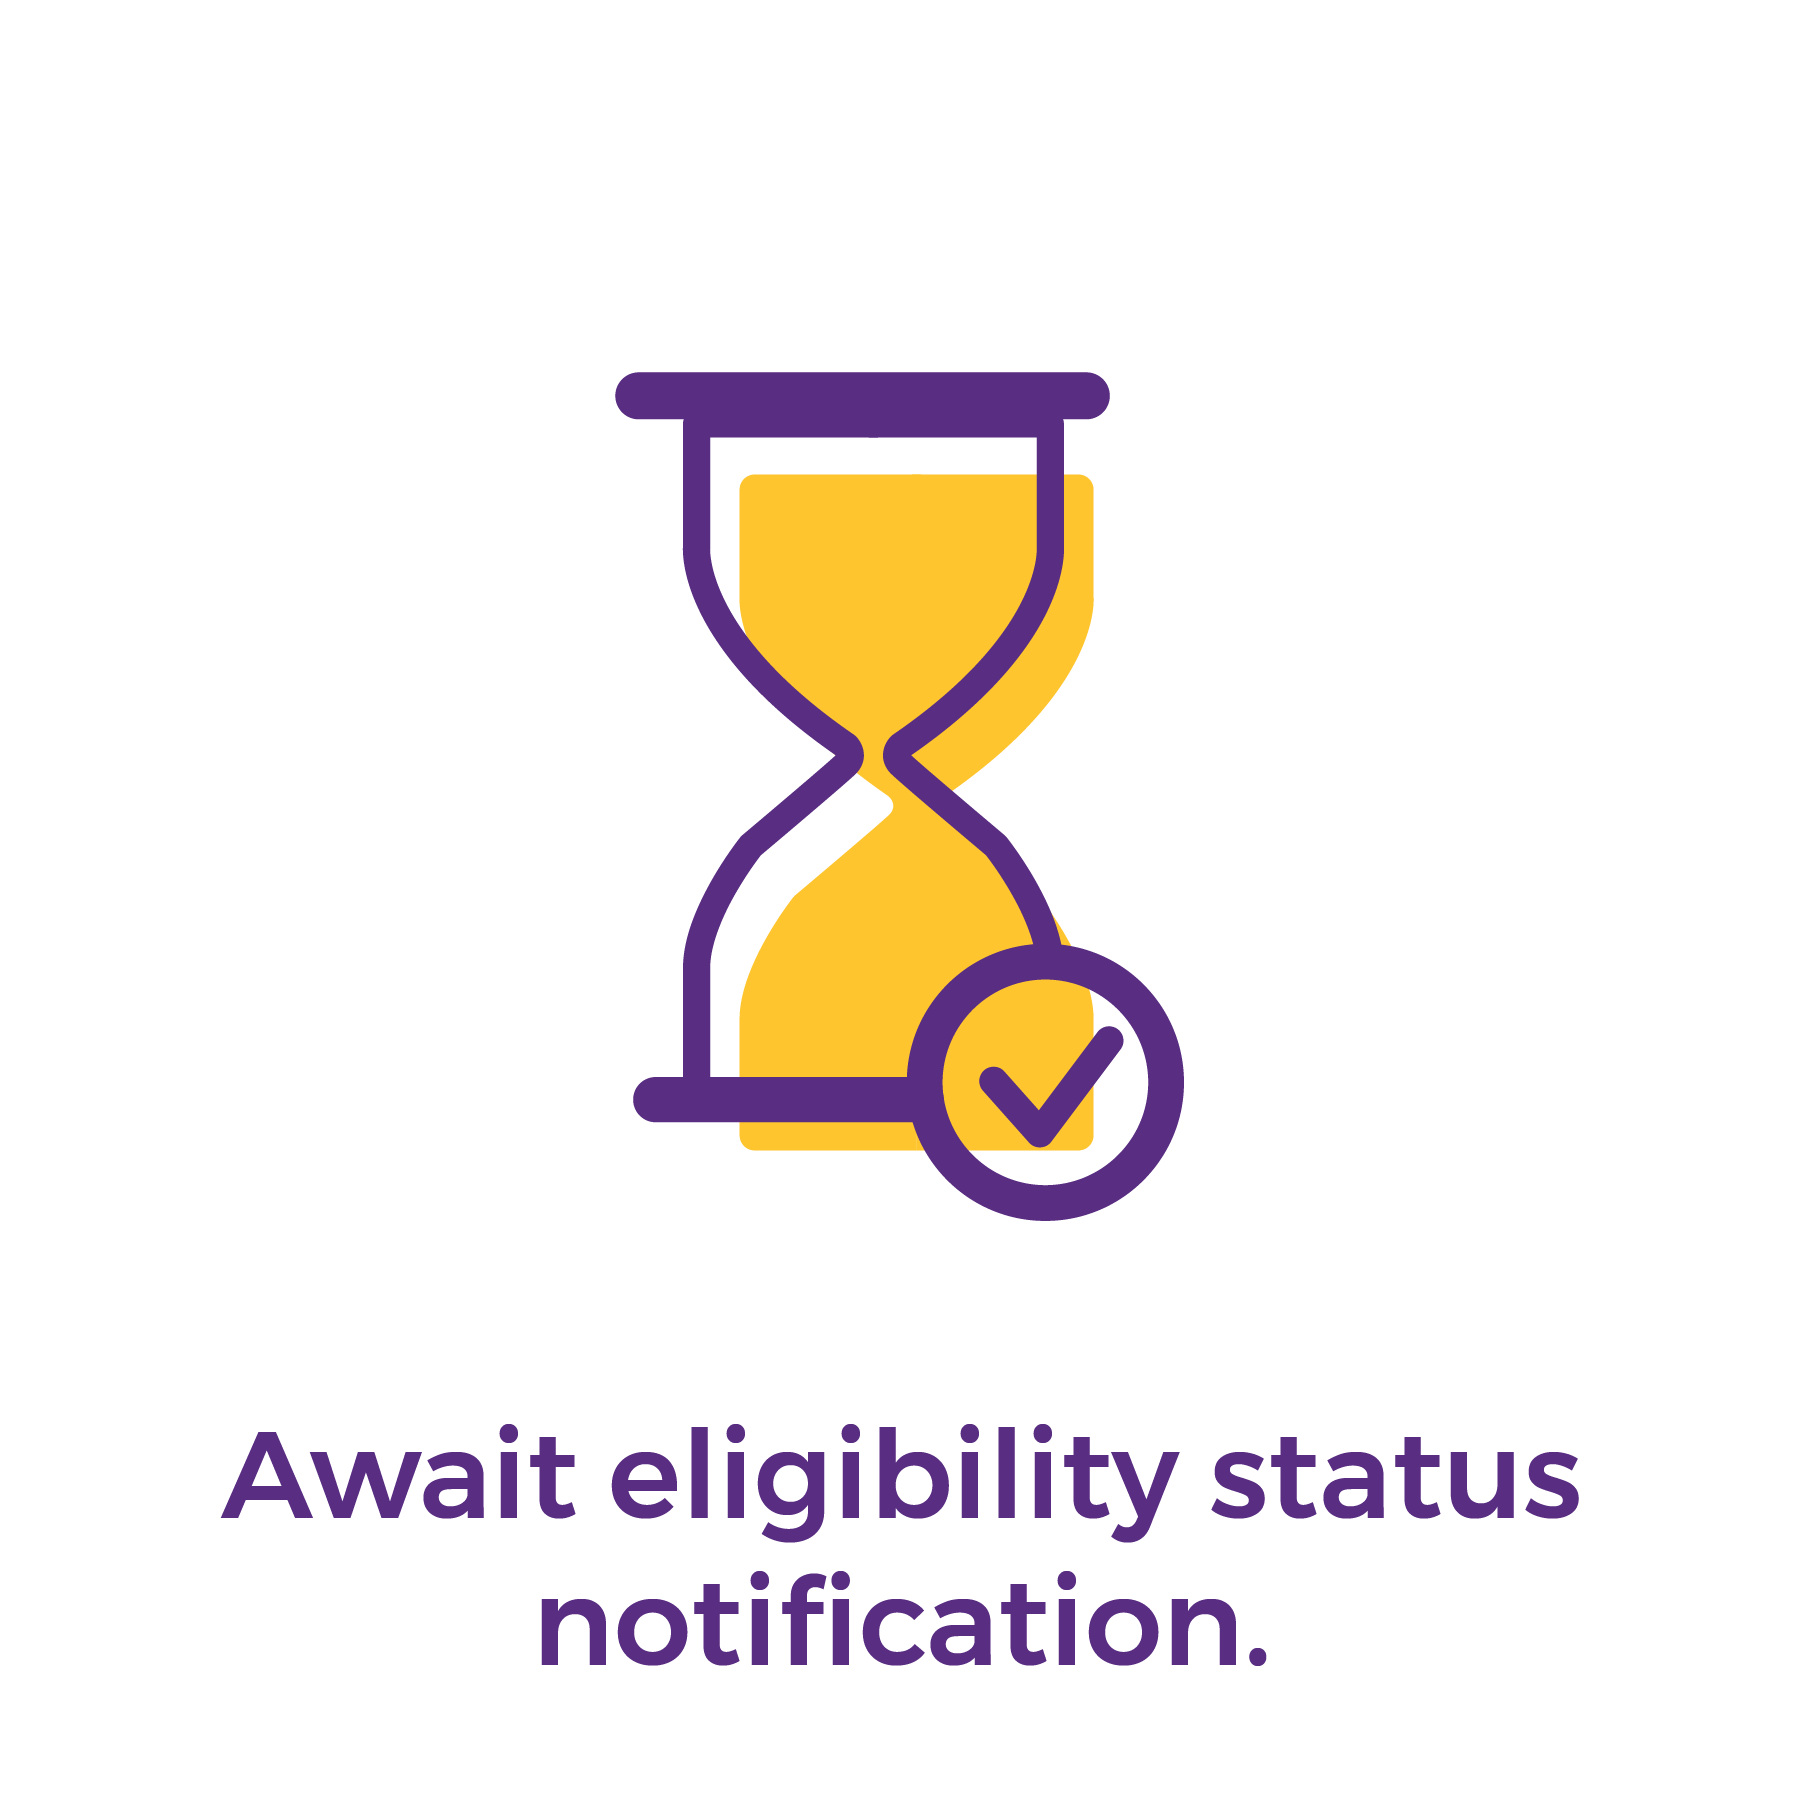 Step 3: Await eligibility status notification.